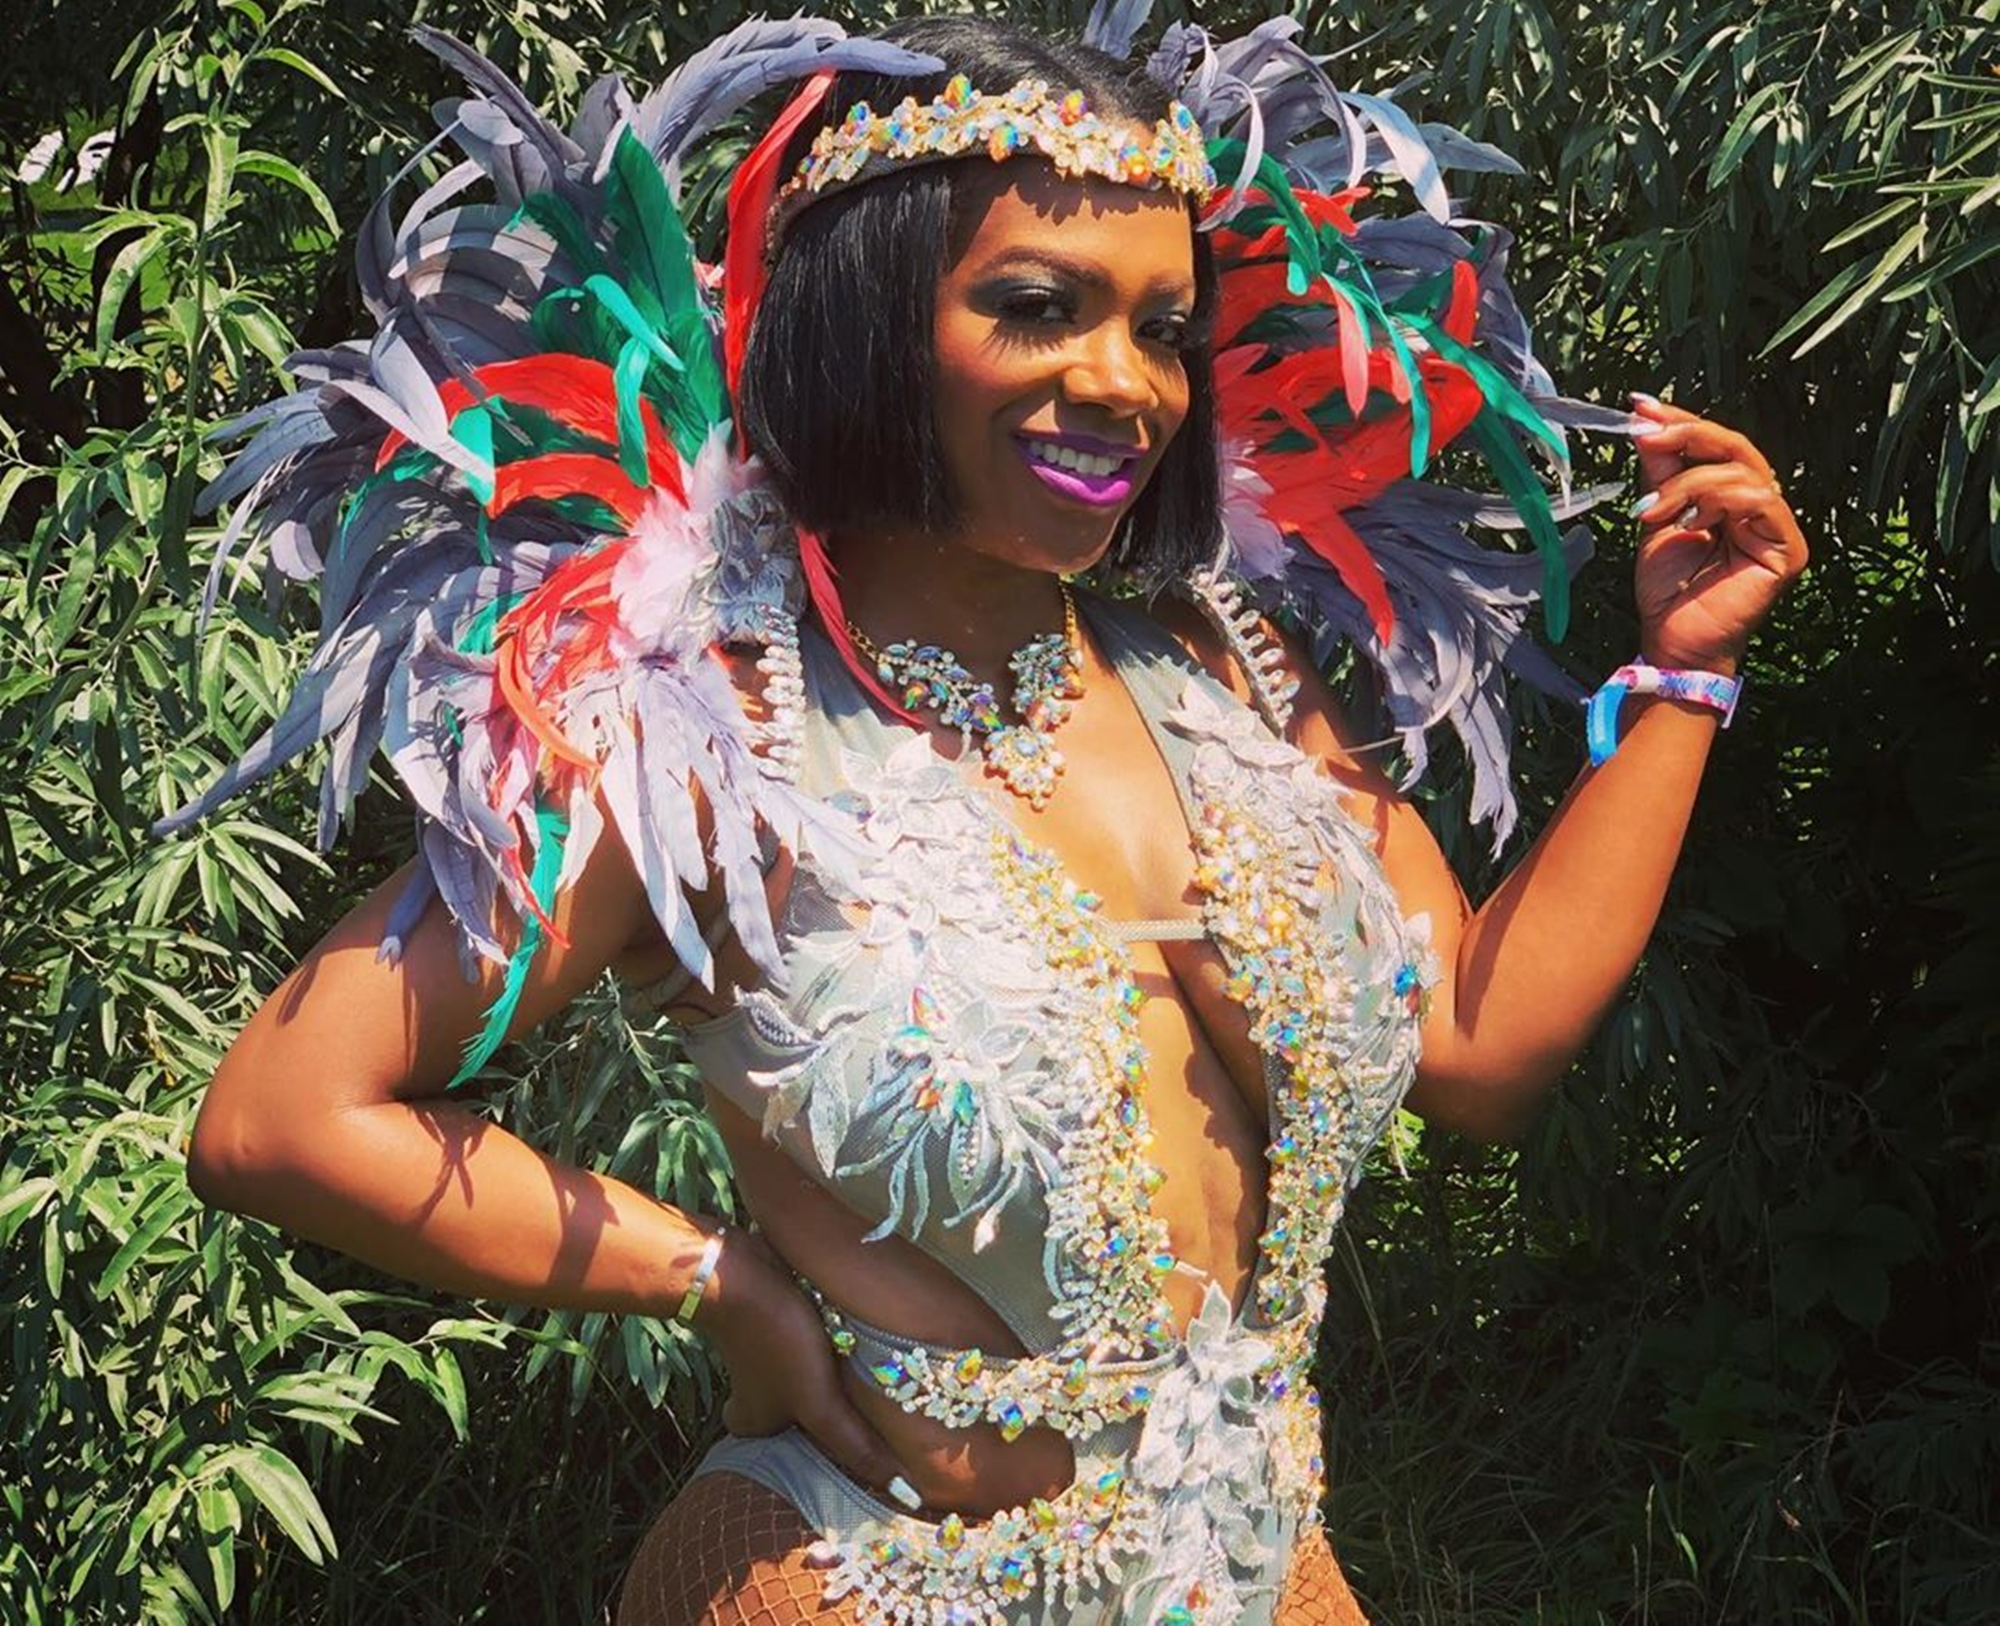 """kandi-burruss-goes-to-caribbean-style-carnival-her-twerking-and-whining-abilities-are-criticized-after-sharing-this-video-todd-tucker-will-say-otherwise"""